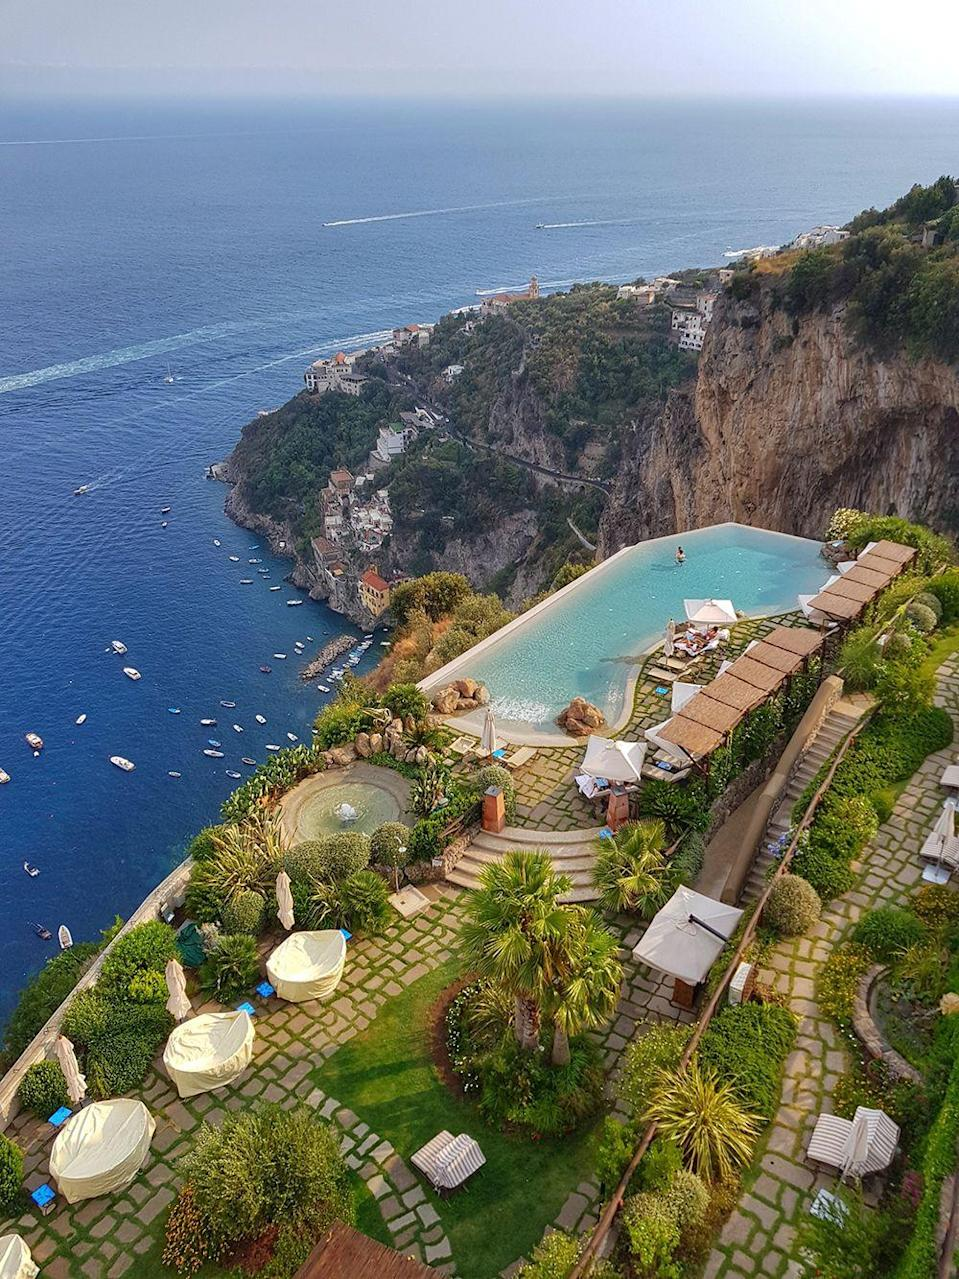 """<p>This cool pool can be found on a secluded clifftop between Amalfi and Postiano in the grounds of <a href=""""https://monasterosantarosa.com"""" rel=""""nofollow noopener"""" target=""""_blank"""" data-ylk=""""slk:Monastero"""" class=""""link rapid-noclick-resp"""">Monastero</a>, an exclusive boutique, adult-only escape in a spectacular former 17th century monastery. With just twenty romantic rooms, it's one to remember for a honeymoon.</p>"""